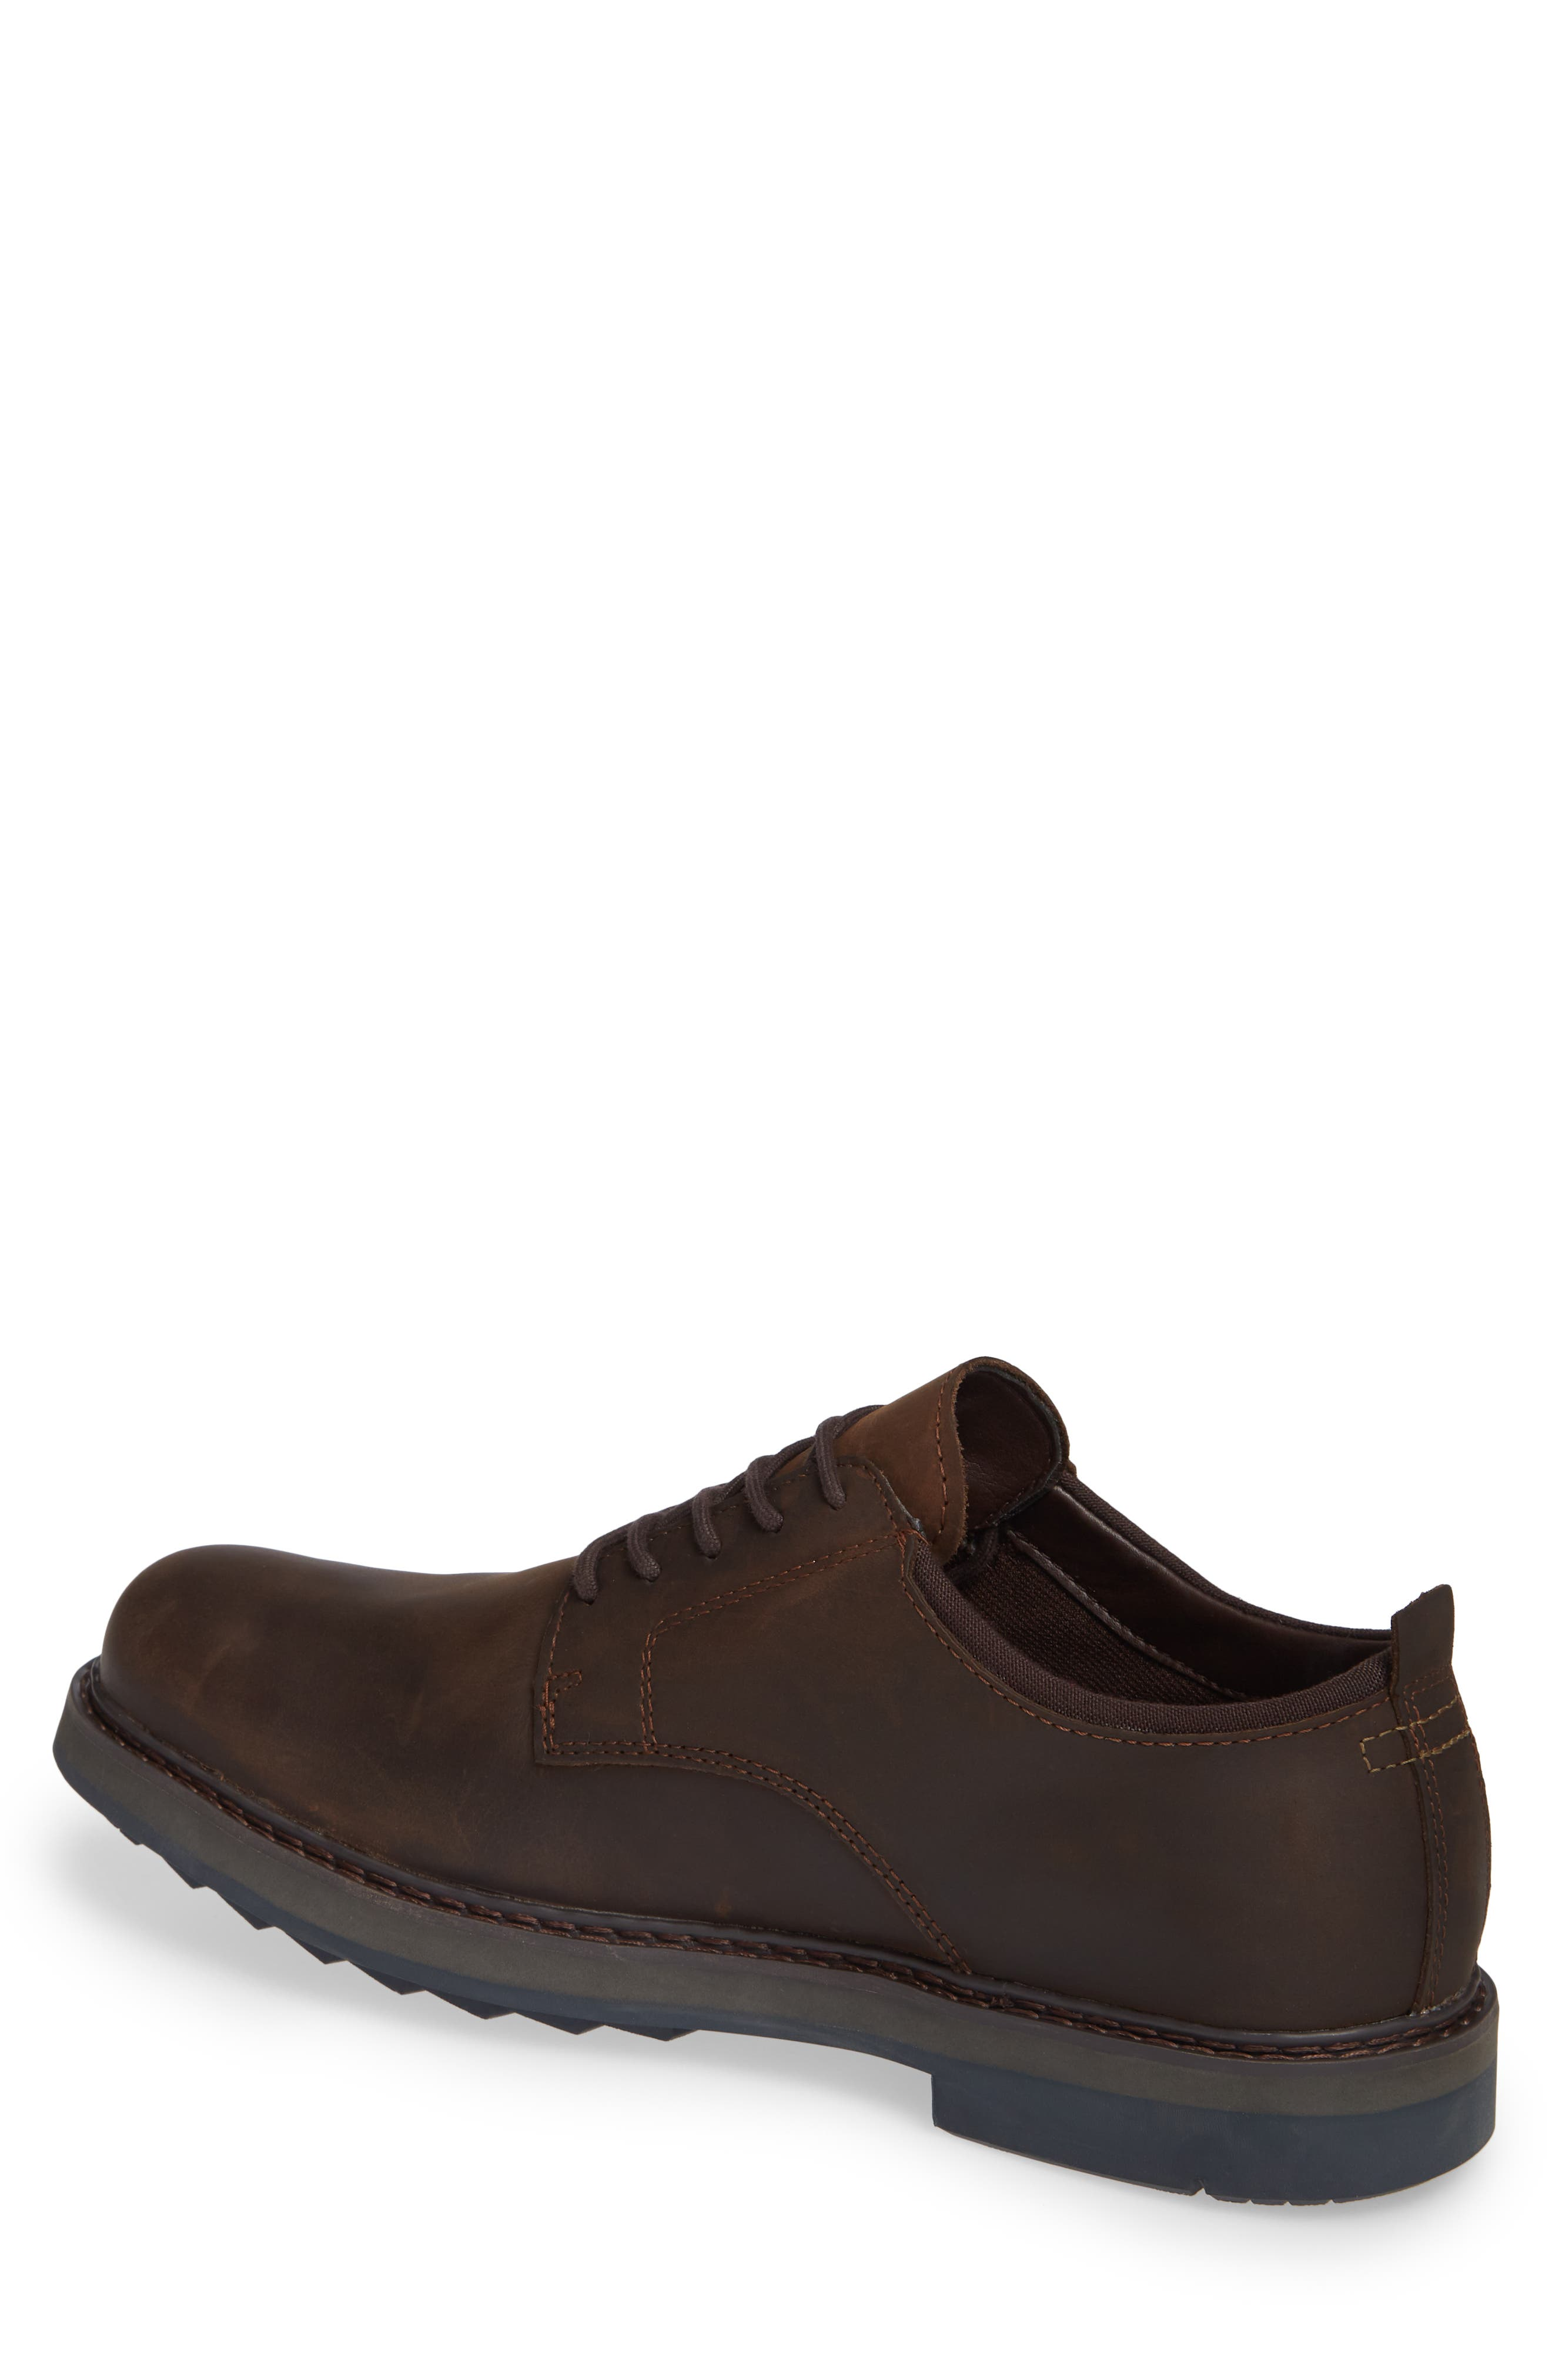 Squall Canyon Waterproof Plain Toe Derby,                             Alternate thumbnail 2, color,                             BROWN LEATHER